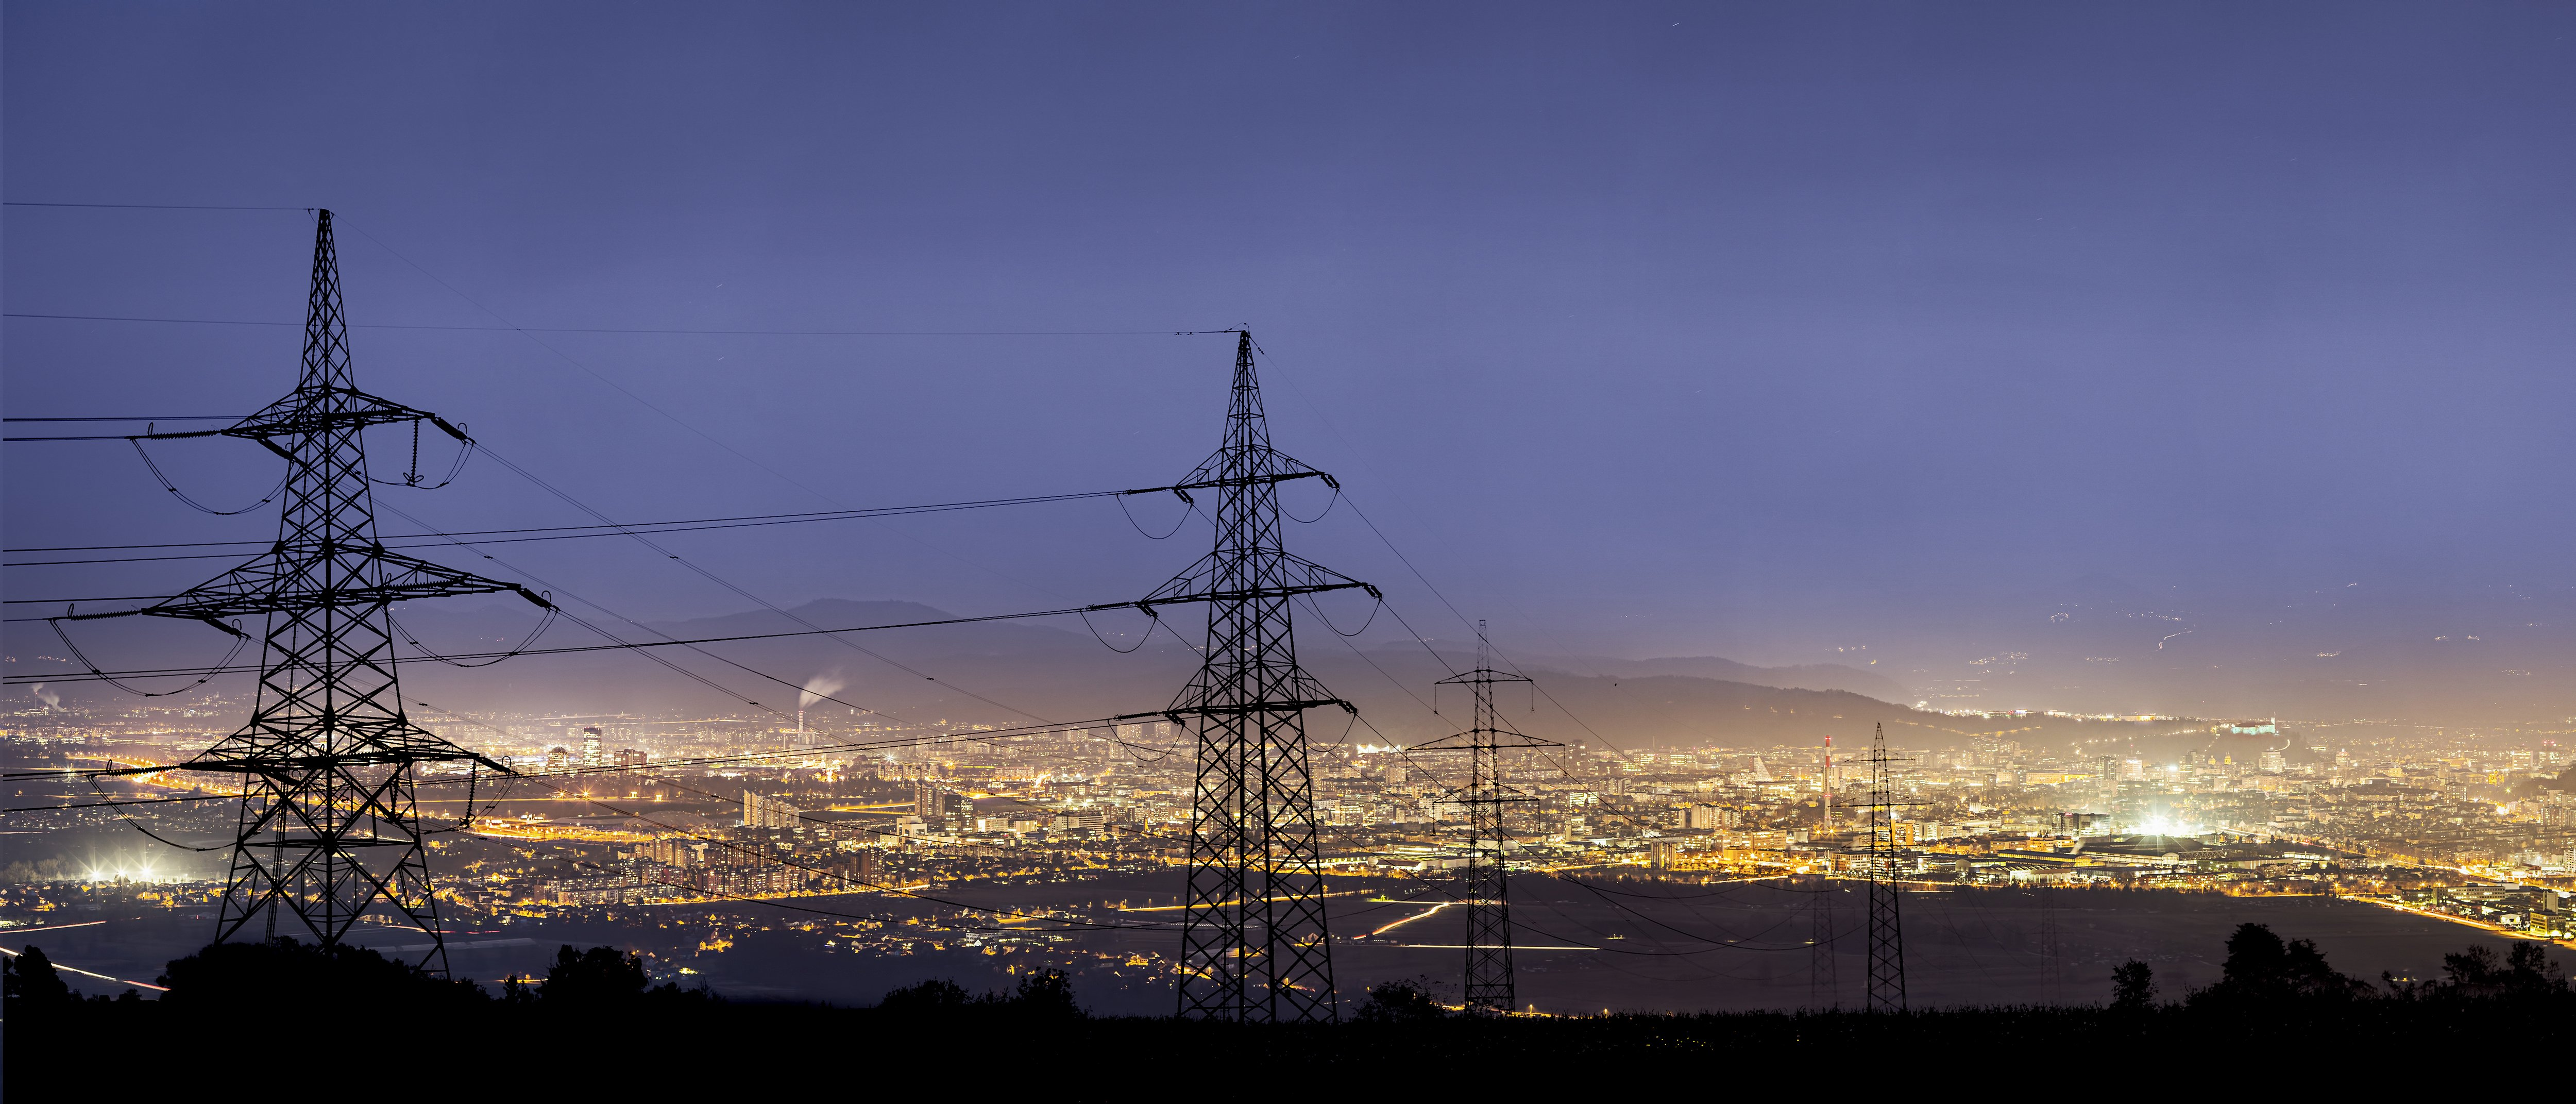 Power lines to a city